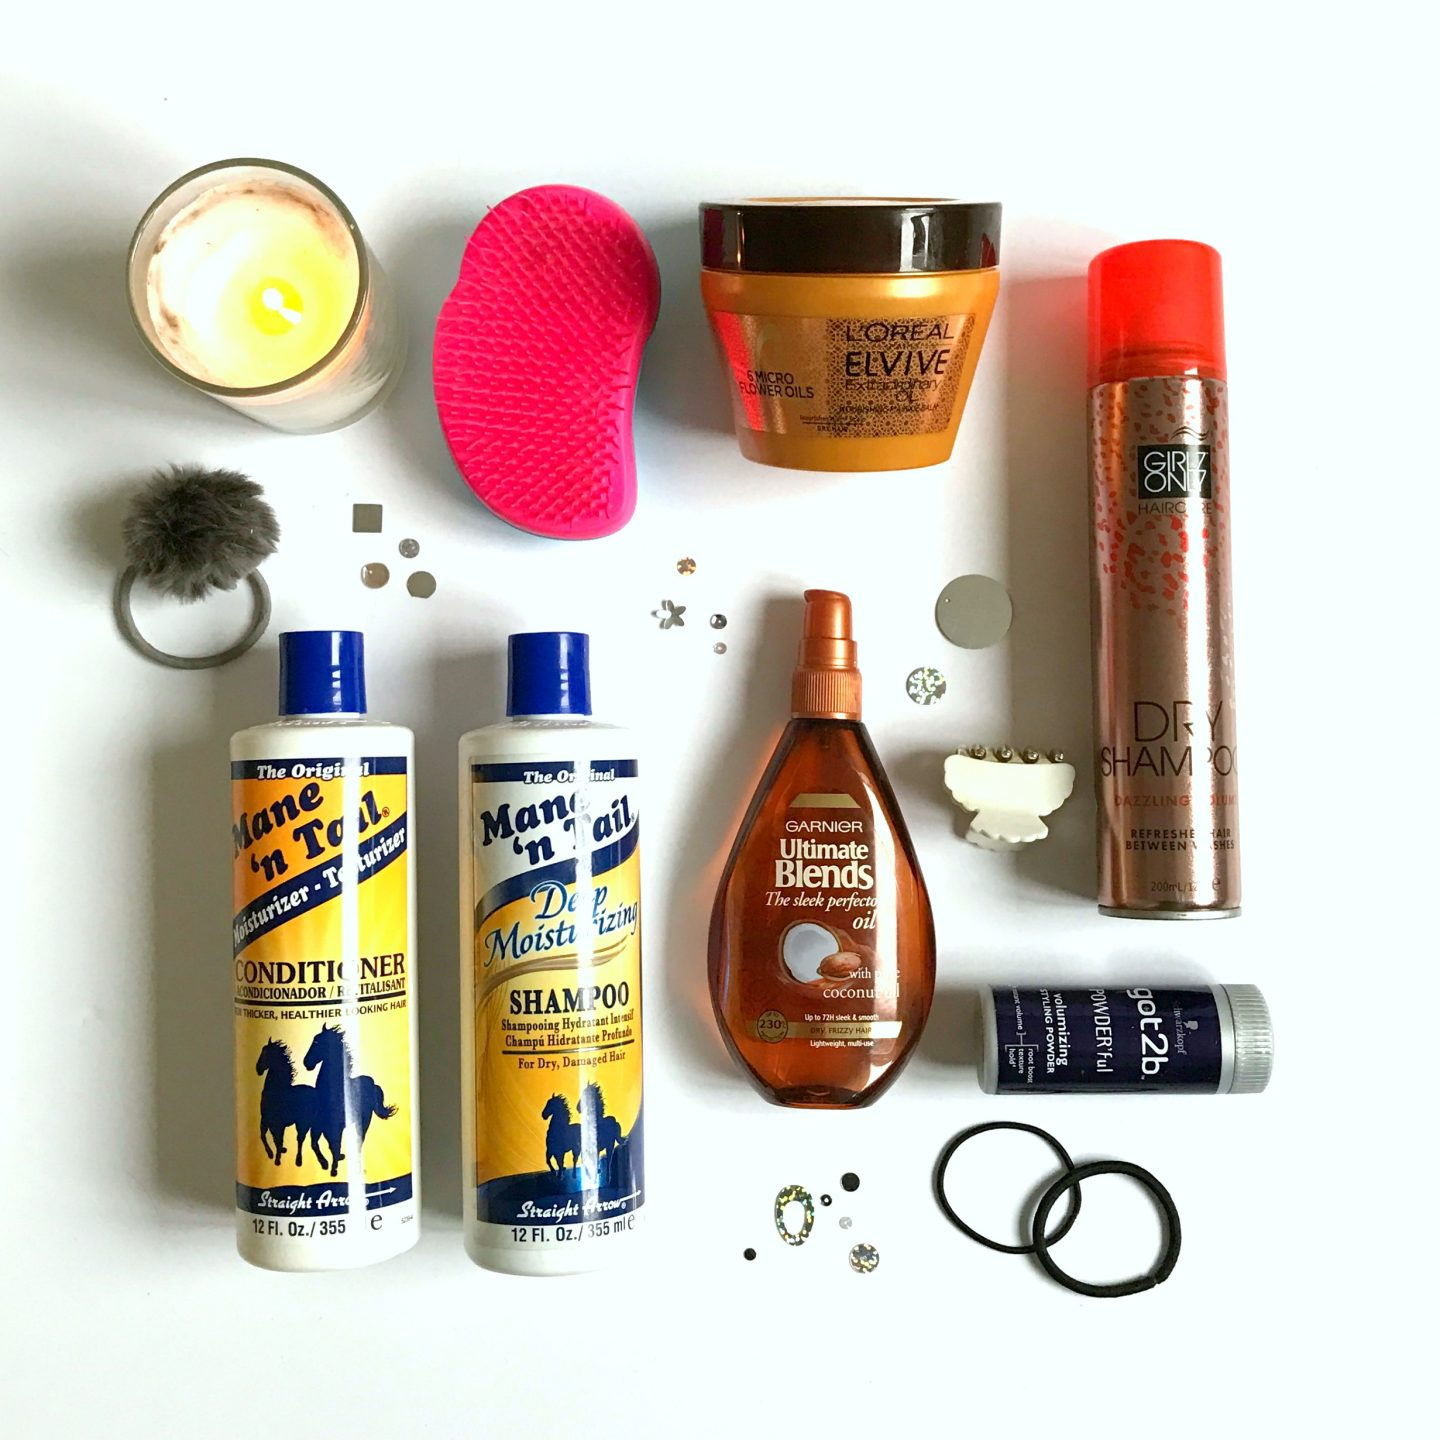 Those hair essentials EVERY girl needs!